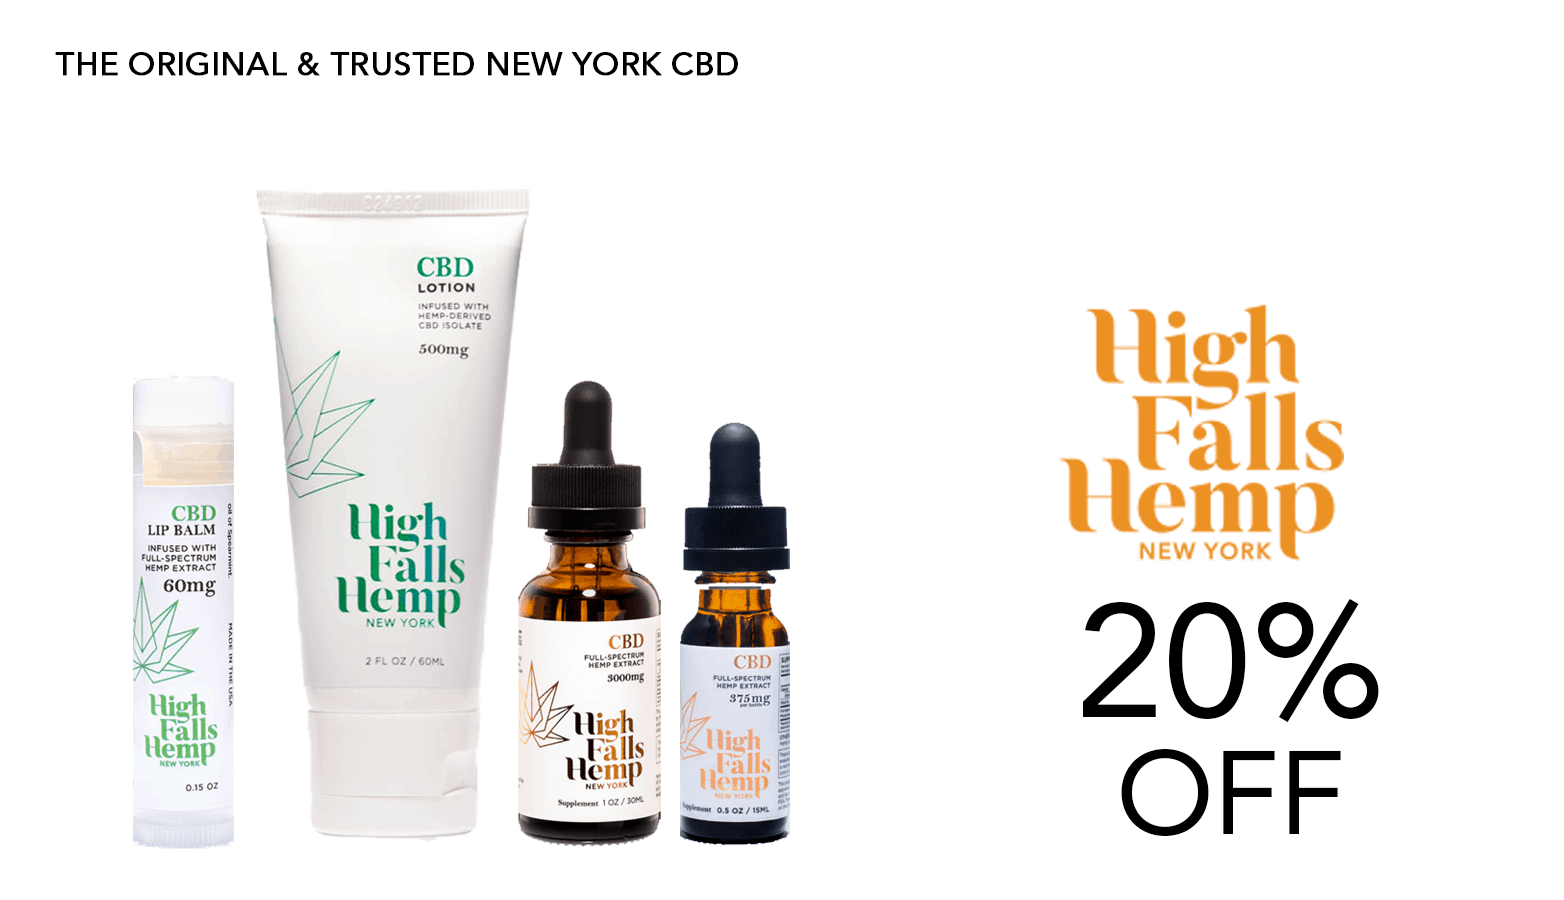 High Falls Hemp Ny CBD Coupon Code Offer Website